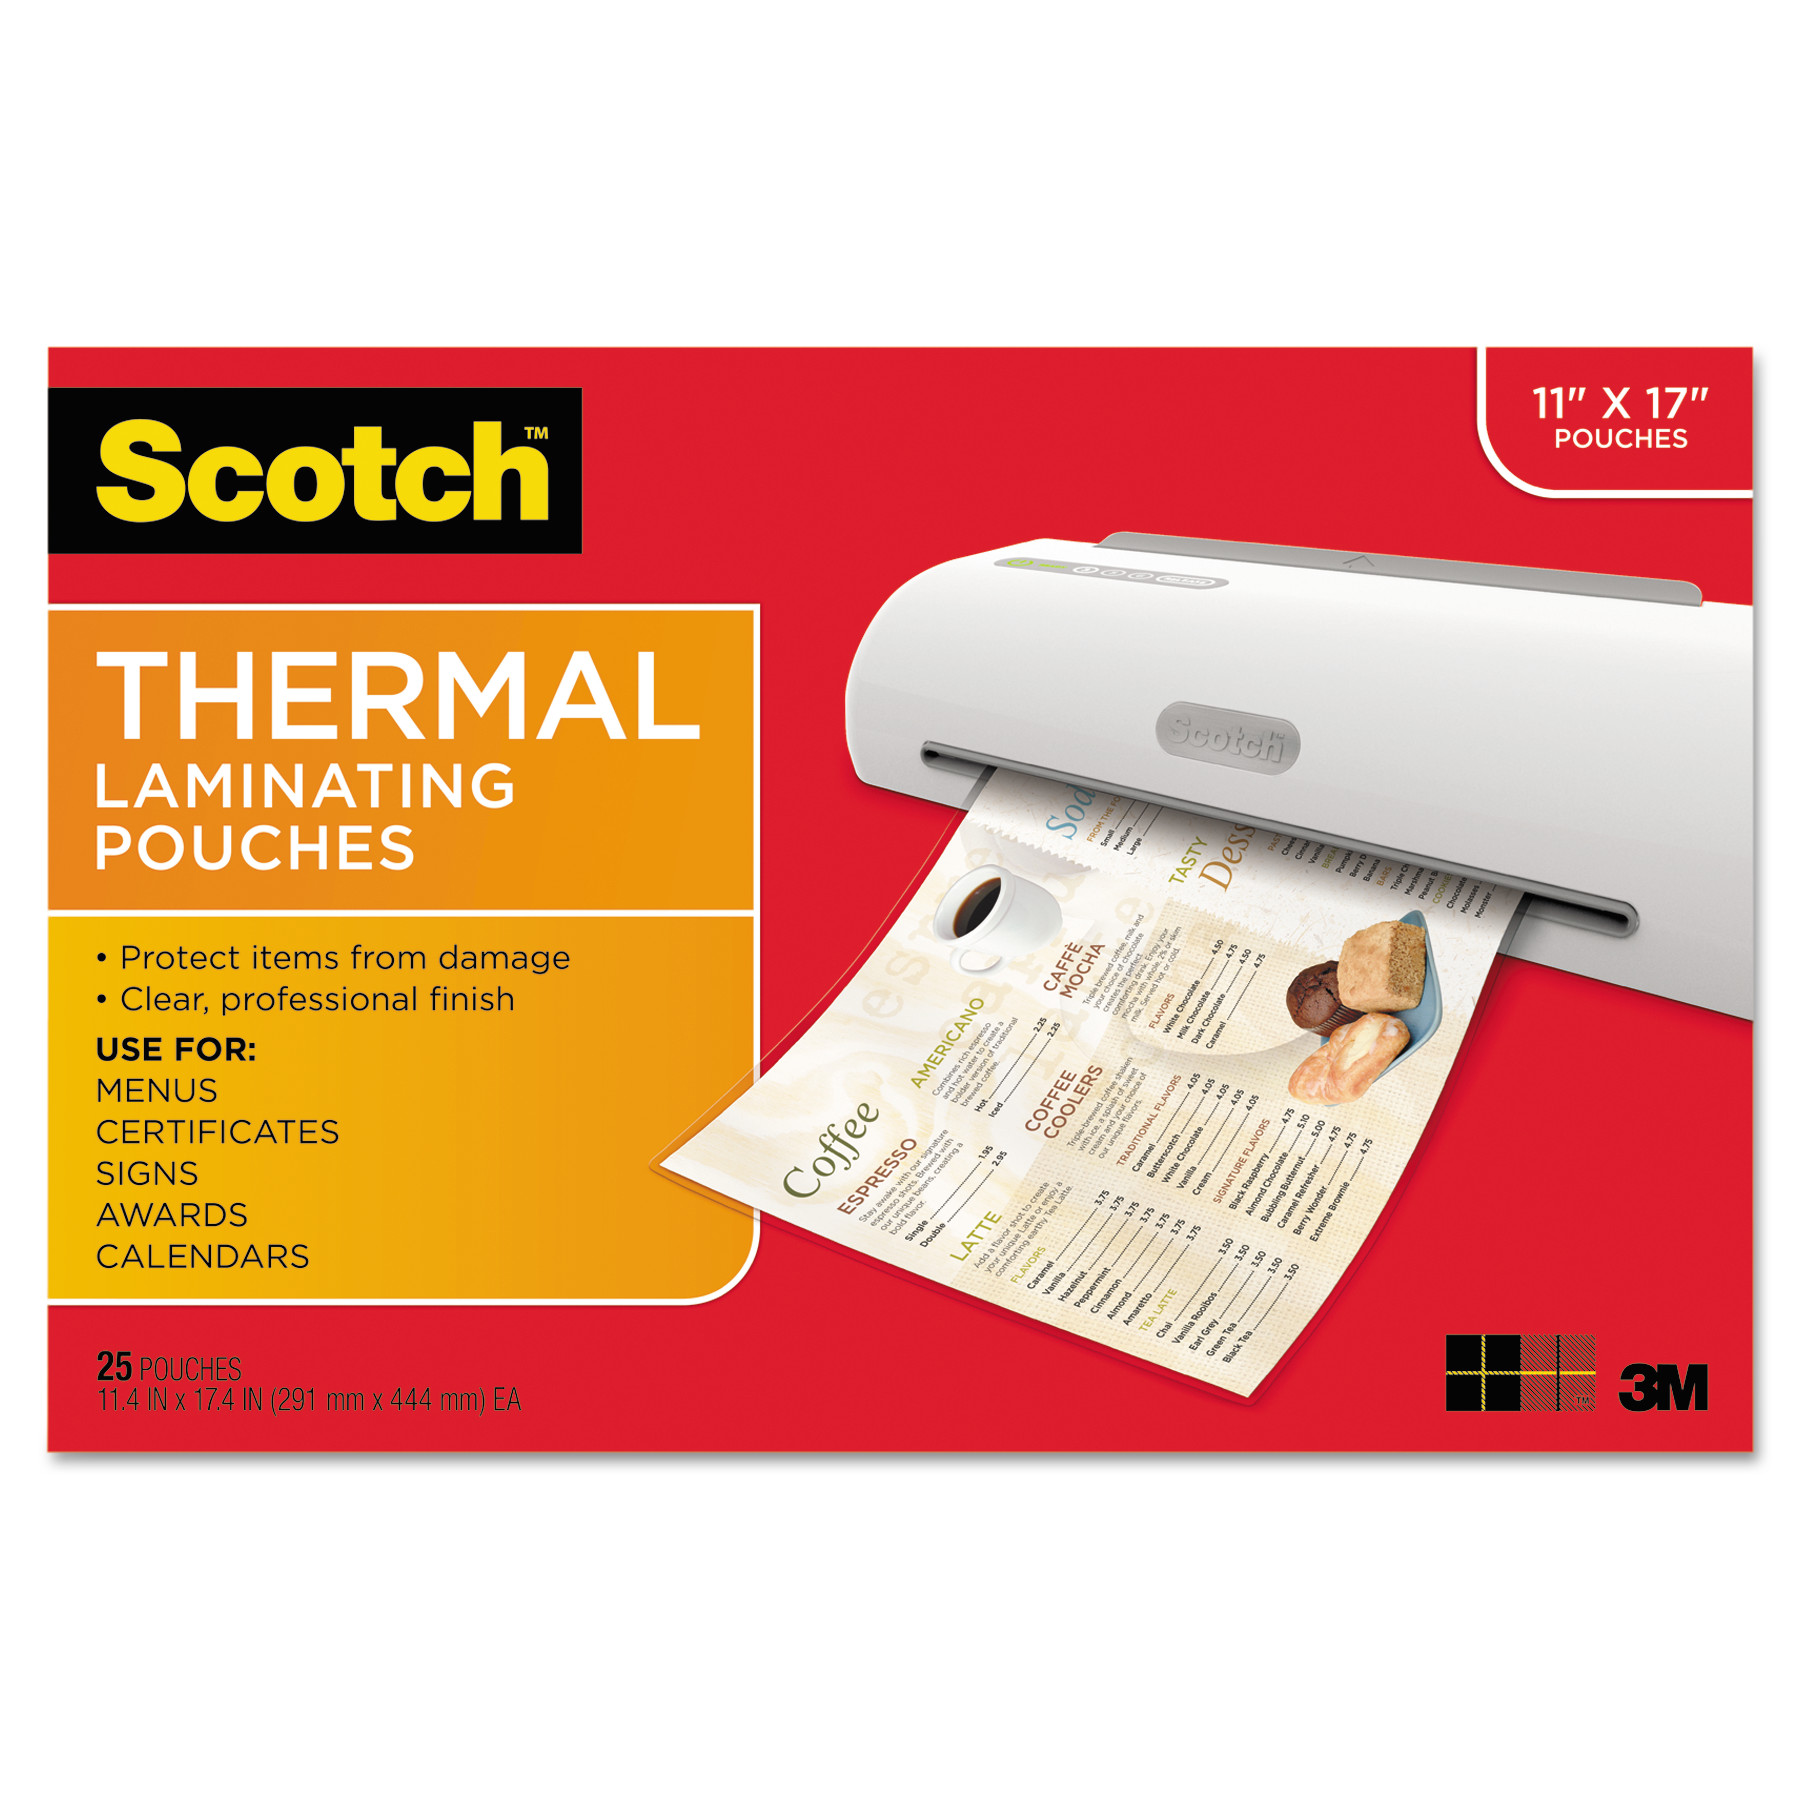 Scotch Menu Size Thermal Laminating Pouches, 3 mil, 17.5 x 11.5 in., 25 Pouches per Pack